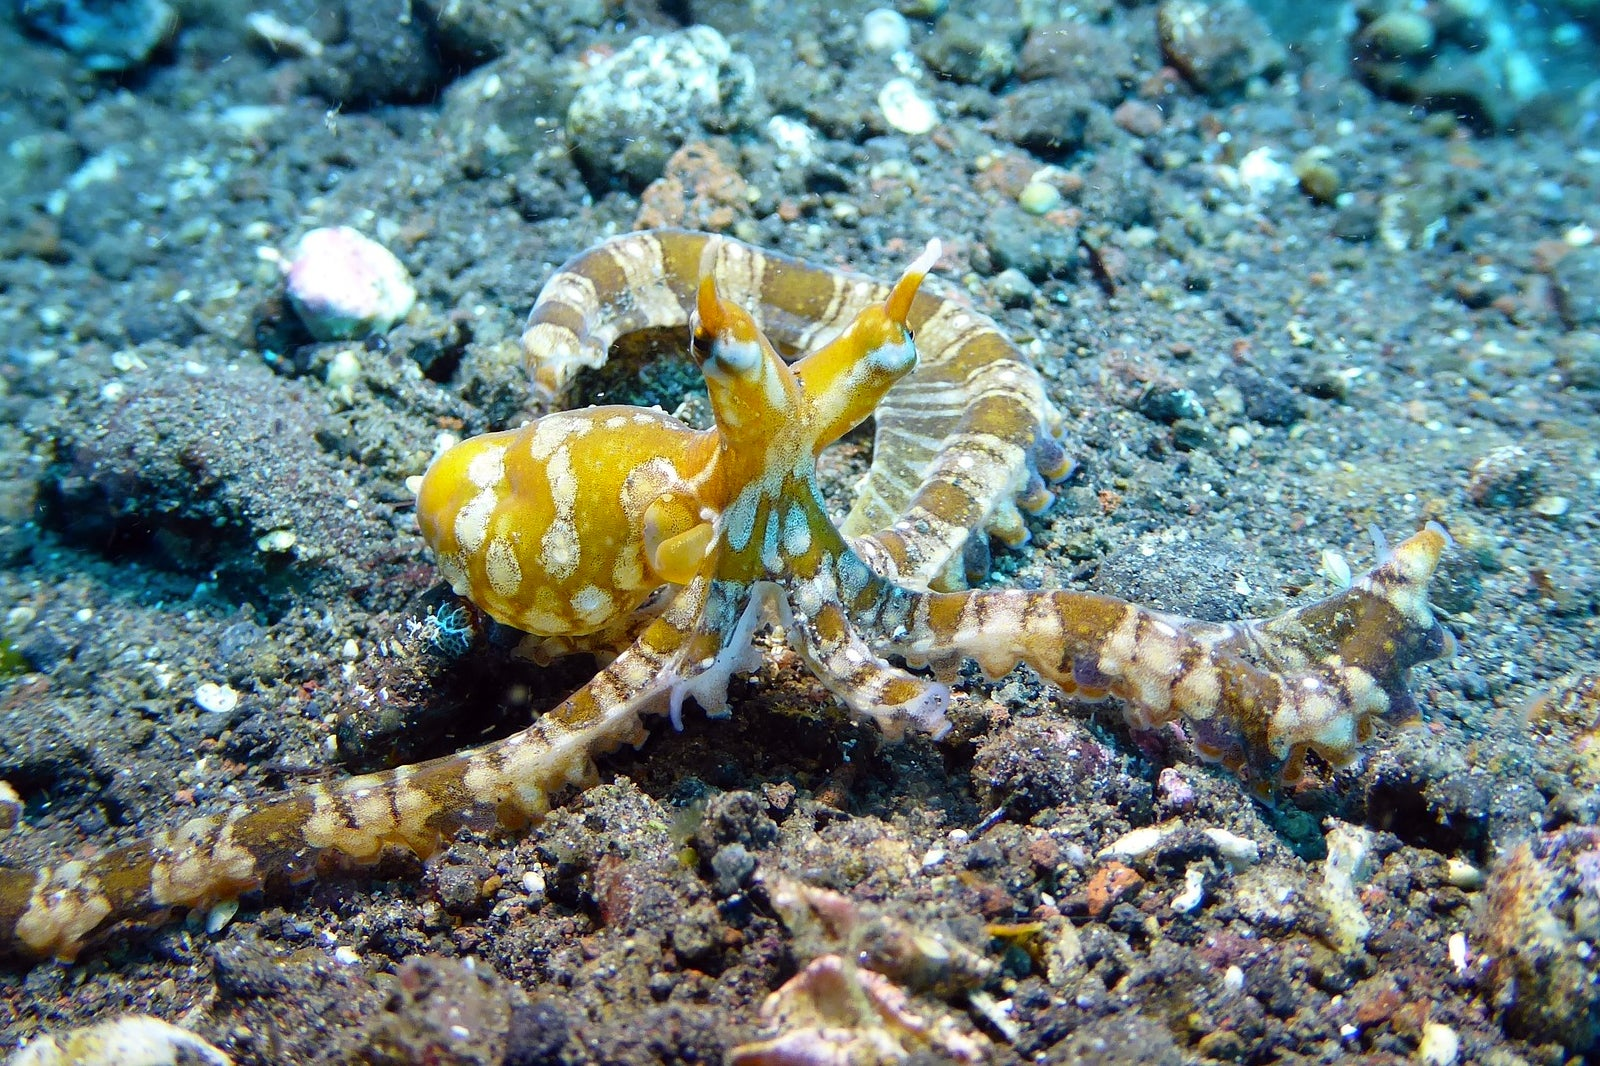 Scuba Diving In Bali A Guide For 1st Time Divers In Bali